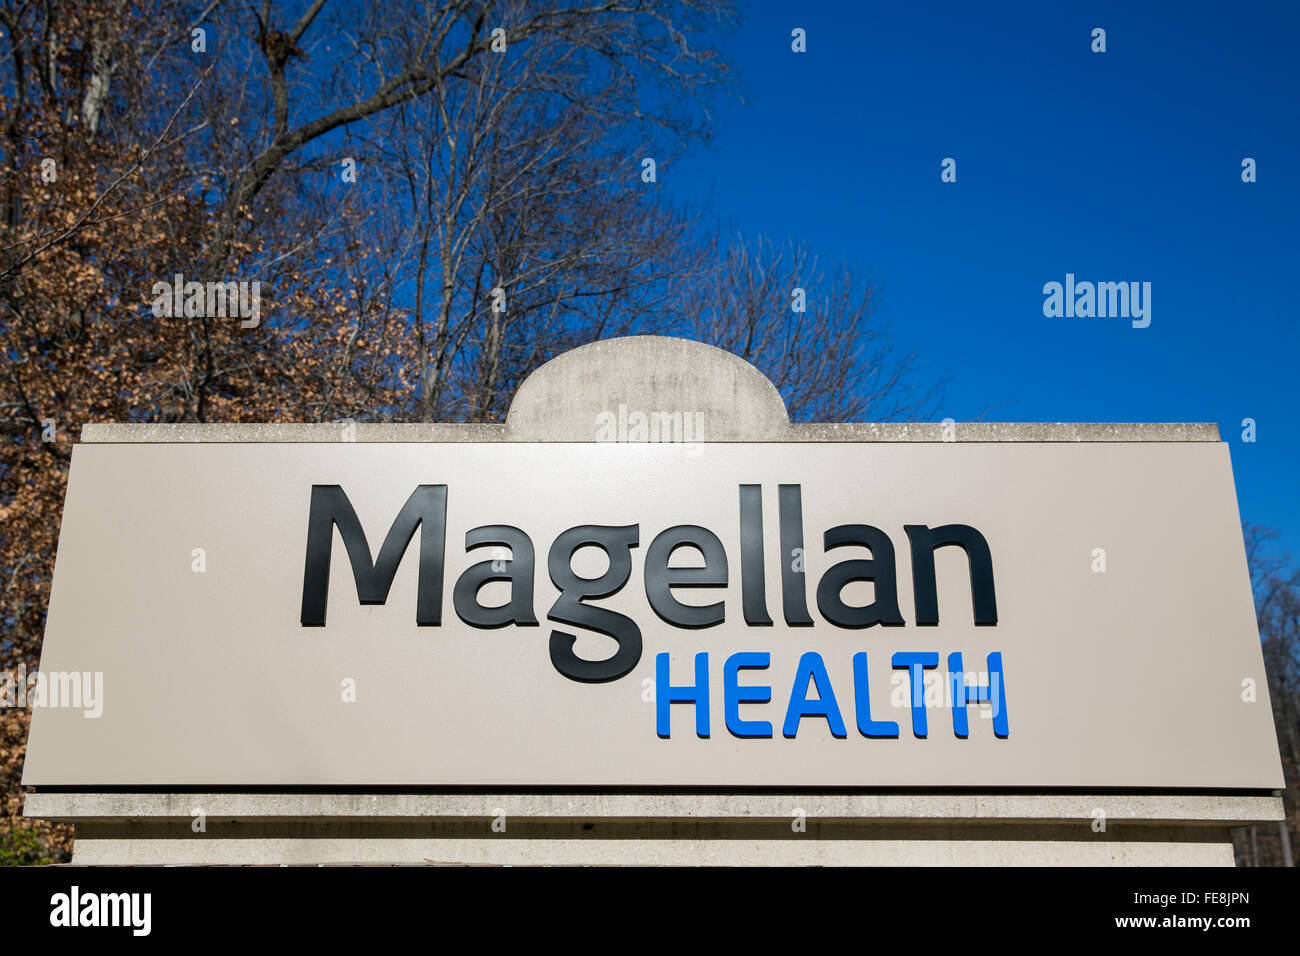 A logo sign outside of an office building occupied by Magellan Health Inc., in Columbia, Maryland on January 2, - Stock Image